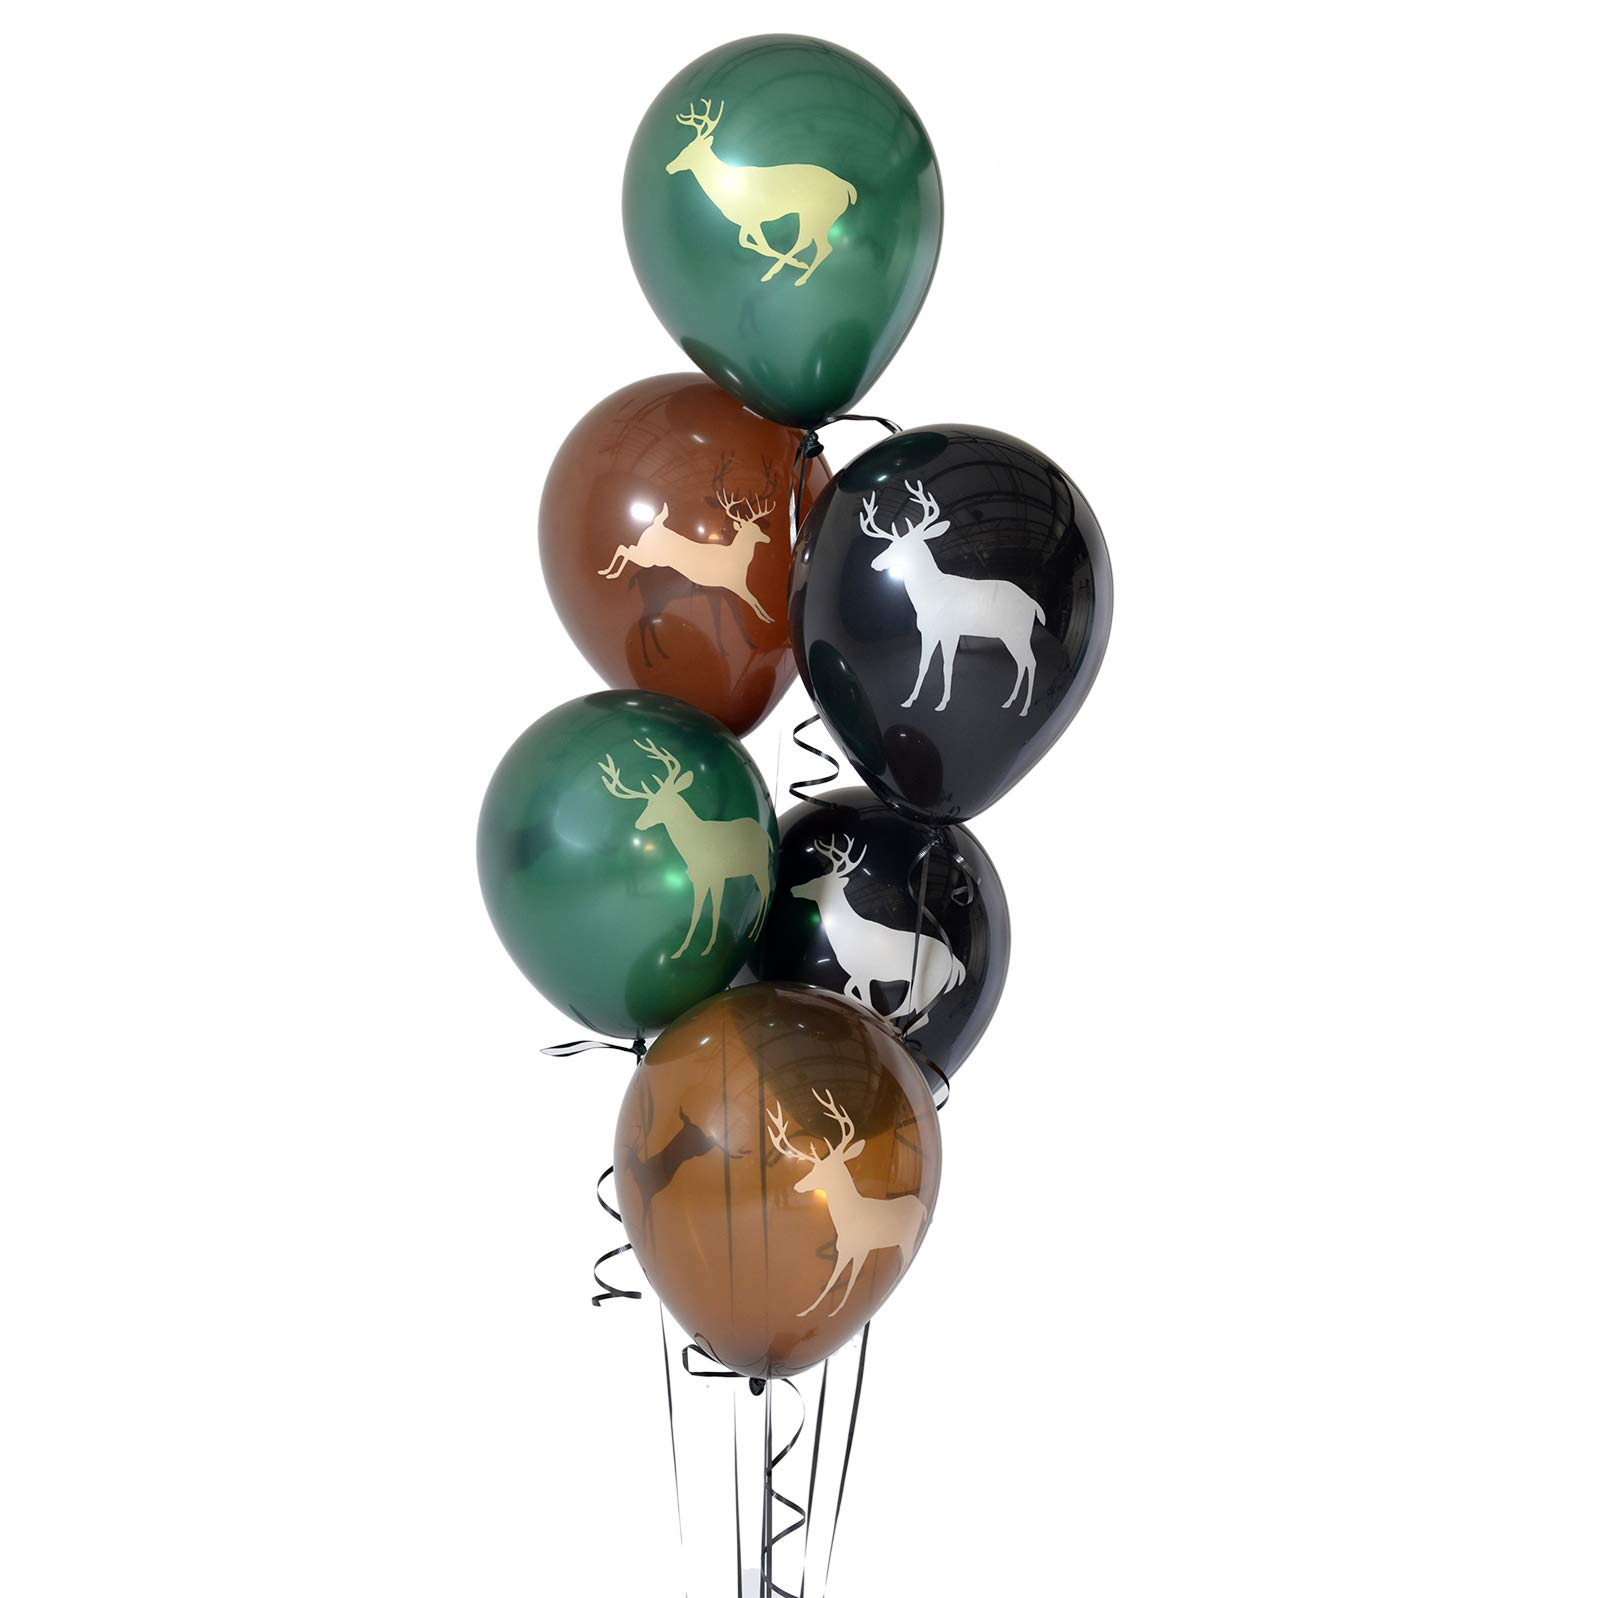 Havercamp Next Camo Party Bucks Latex Balloons | 6 Count | Great for Hunter Themed Party, Camouflage Motif, Birthday Event, Graduation Party, Father's Day Celebration